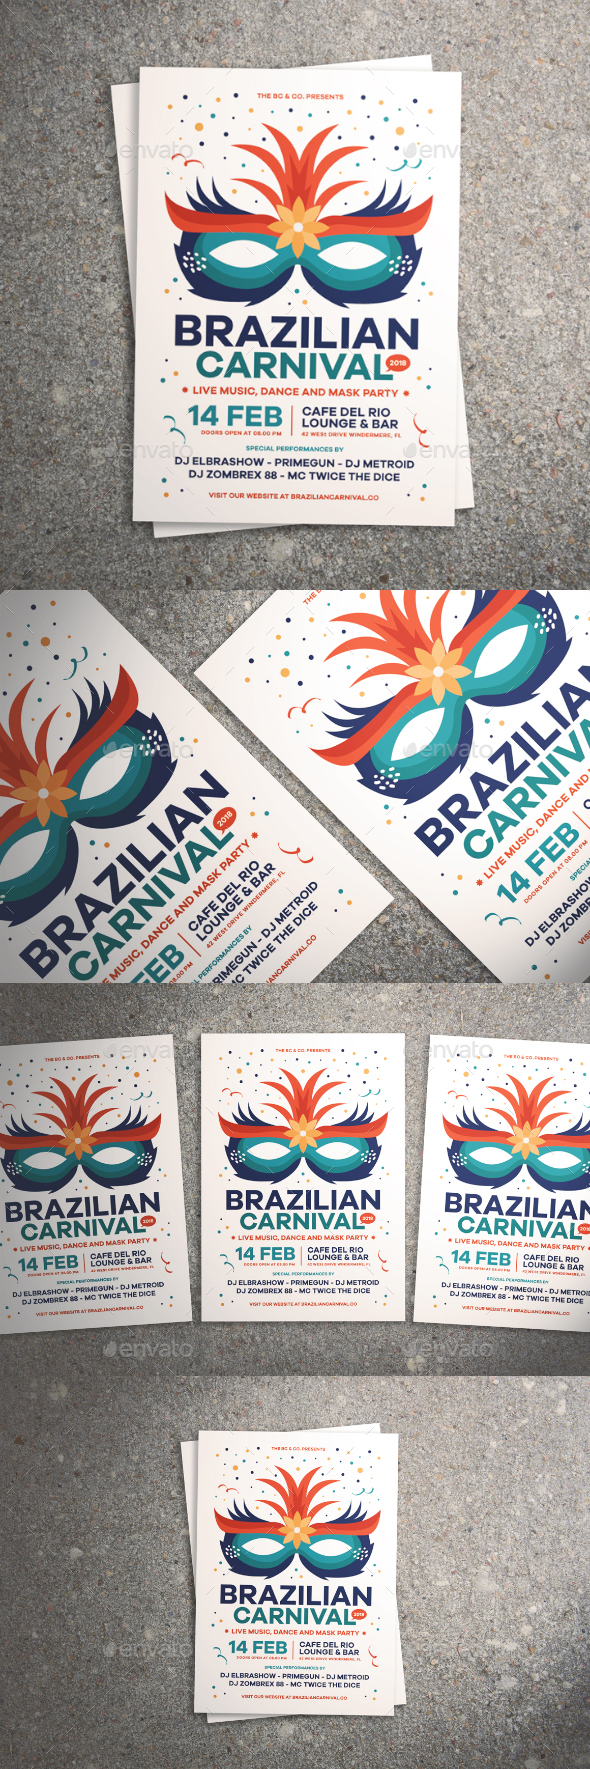 Brazilian Carnival Flyer - Events Flyers